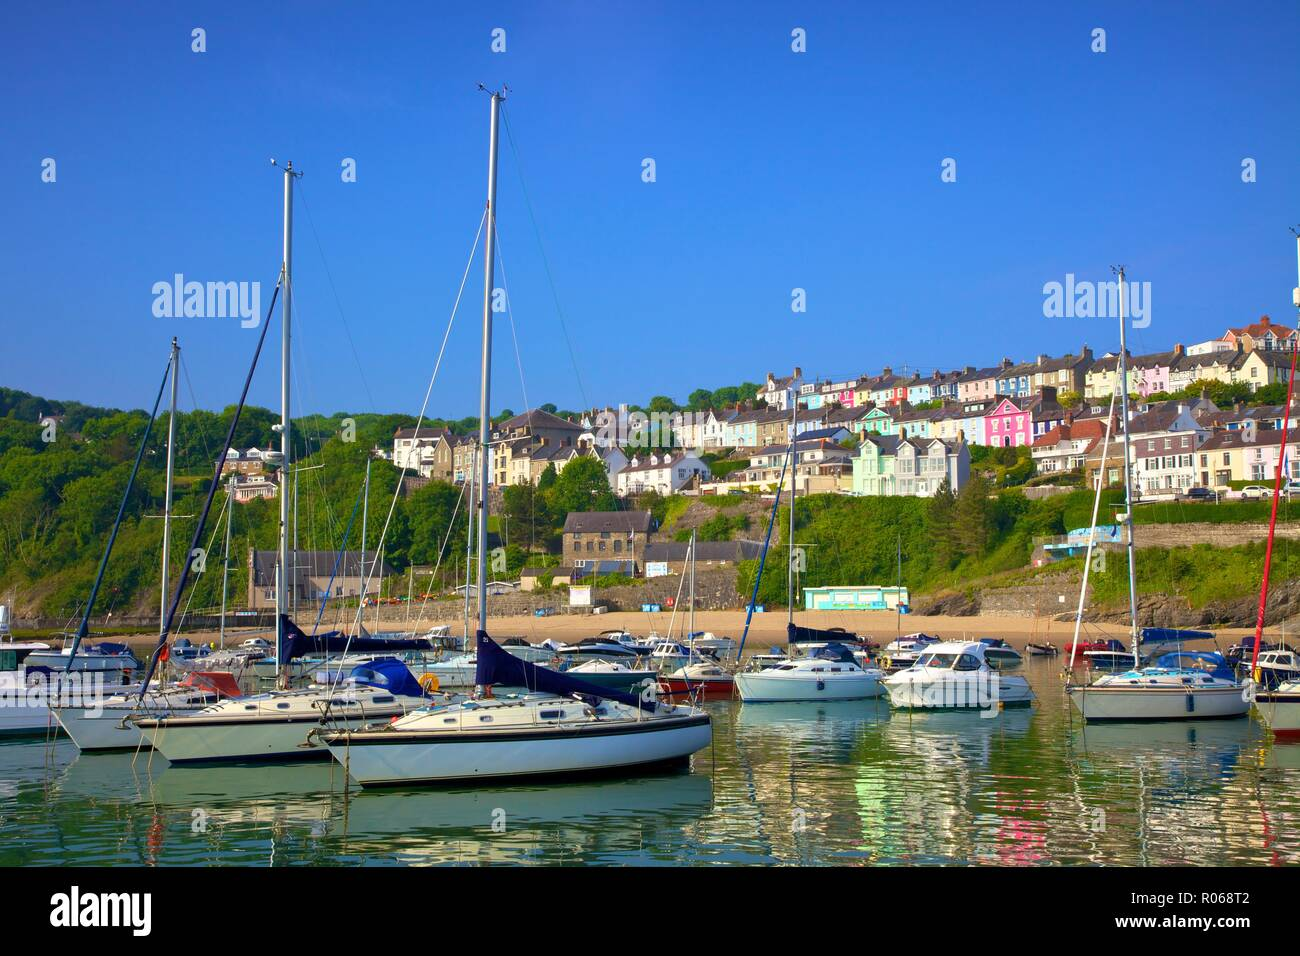 The Harbour at New Quay, Cardigan Bay, Wales, United Kingdom, Europe - Stock Image